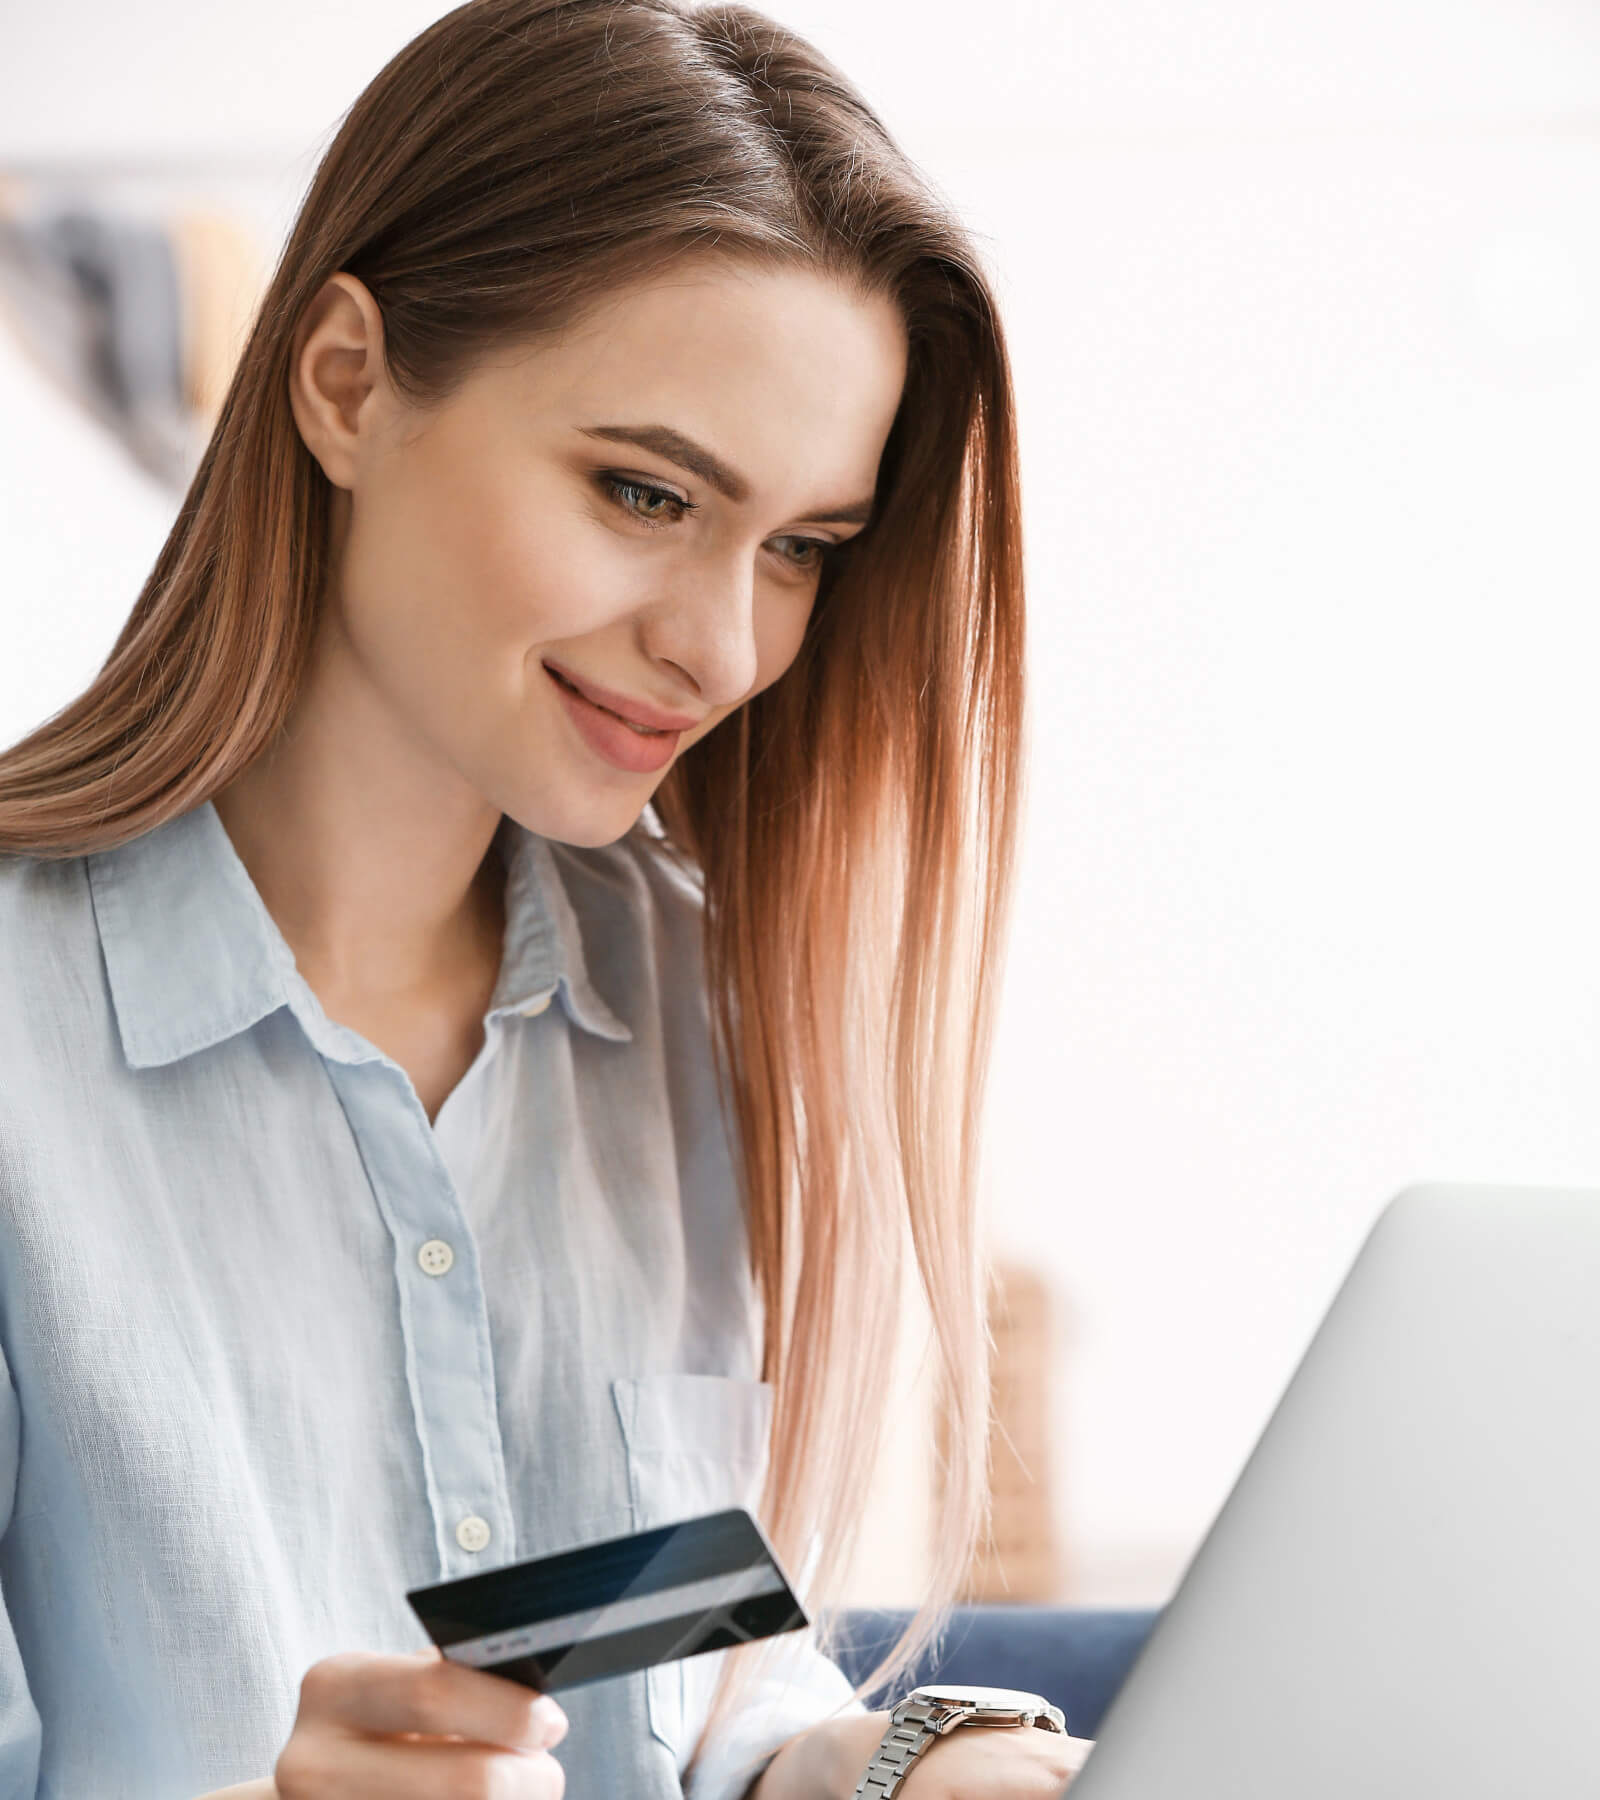 A happy women making an online payment with her credit card